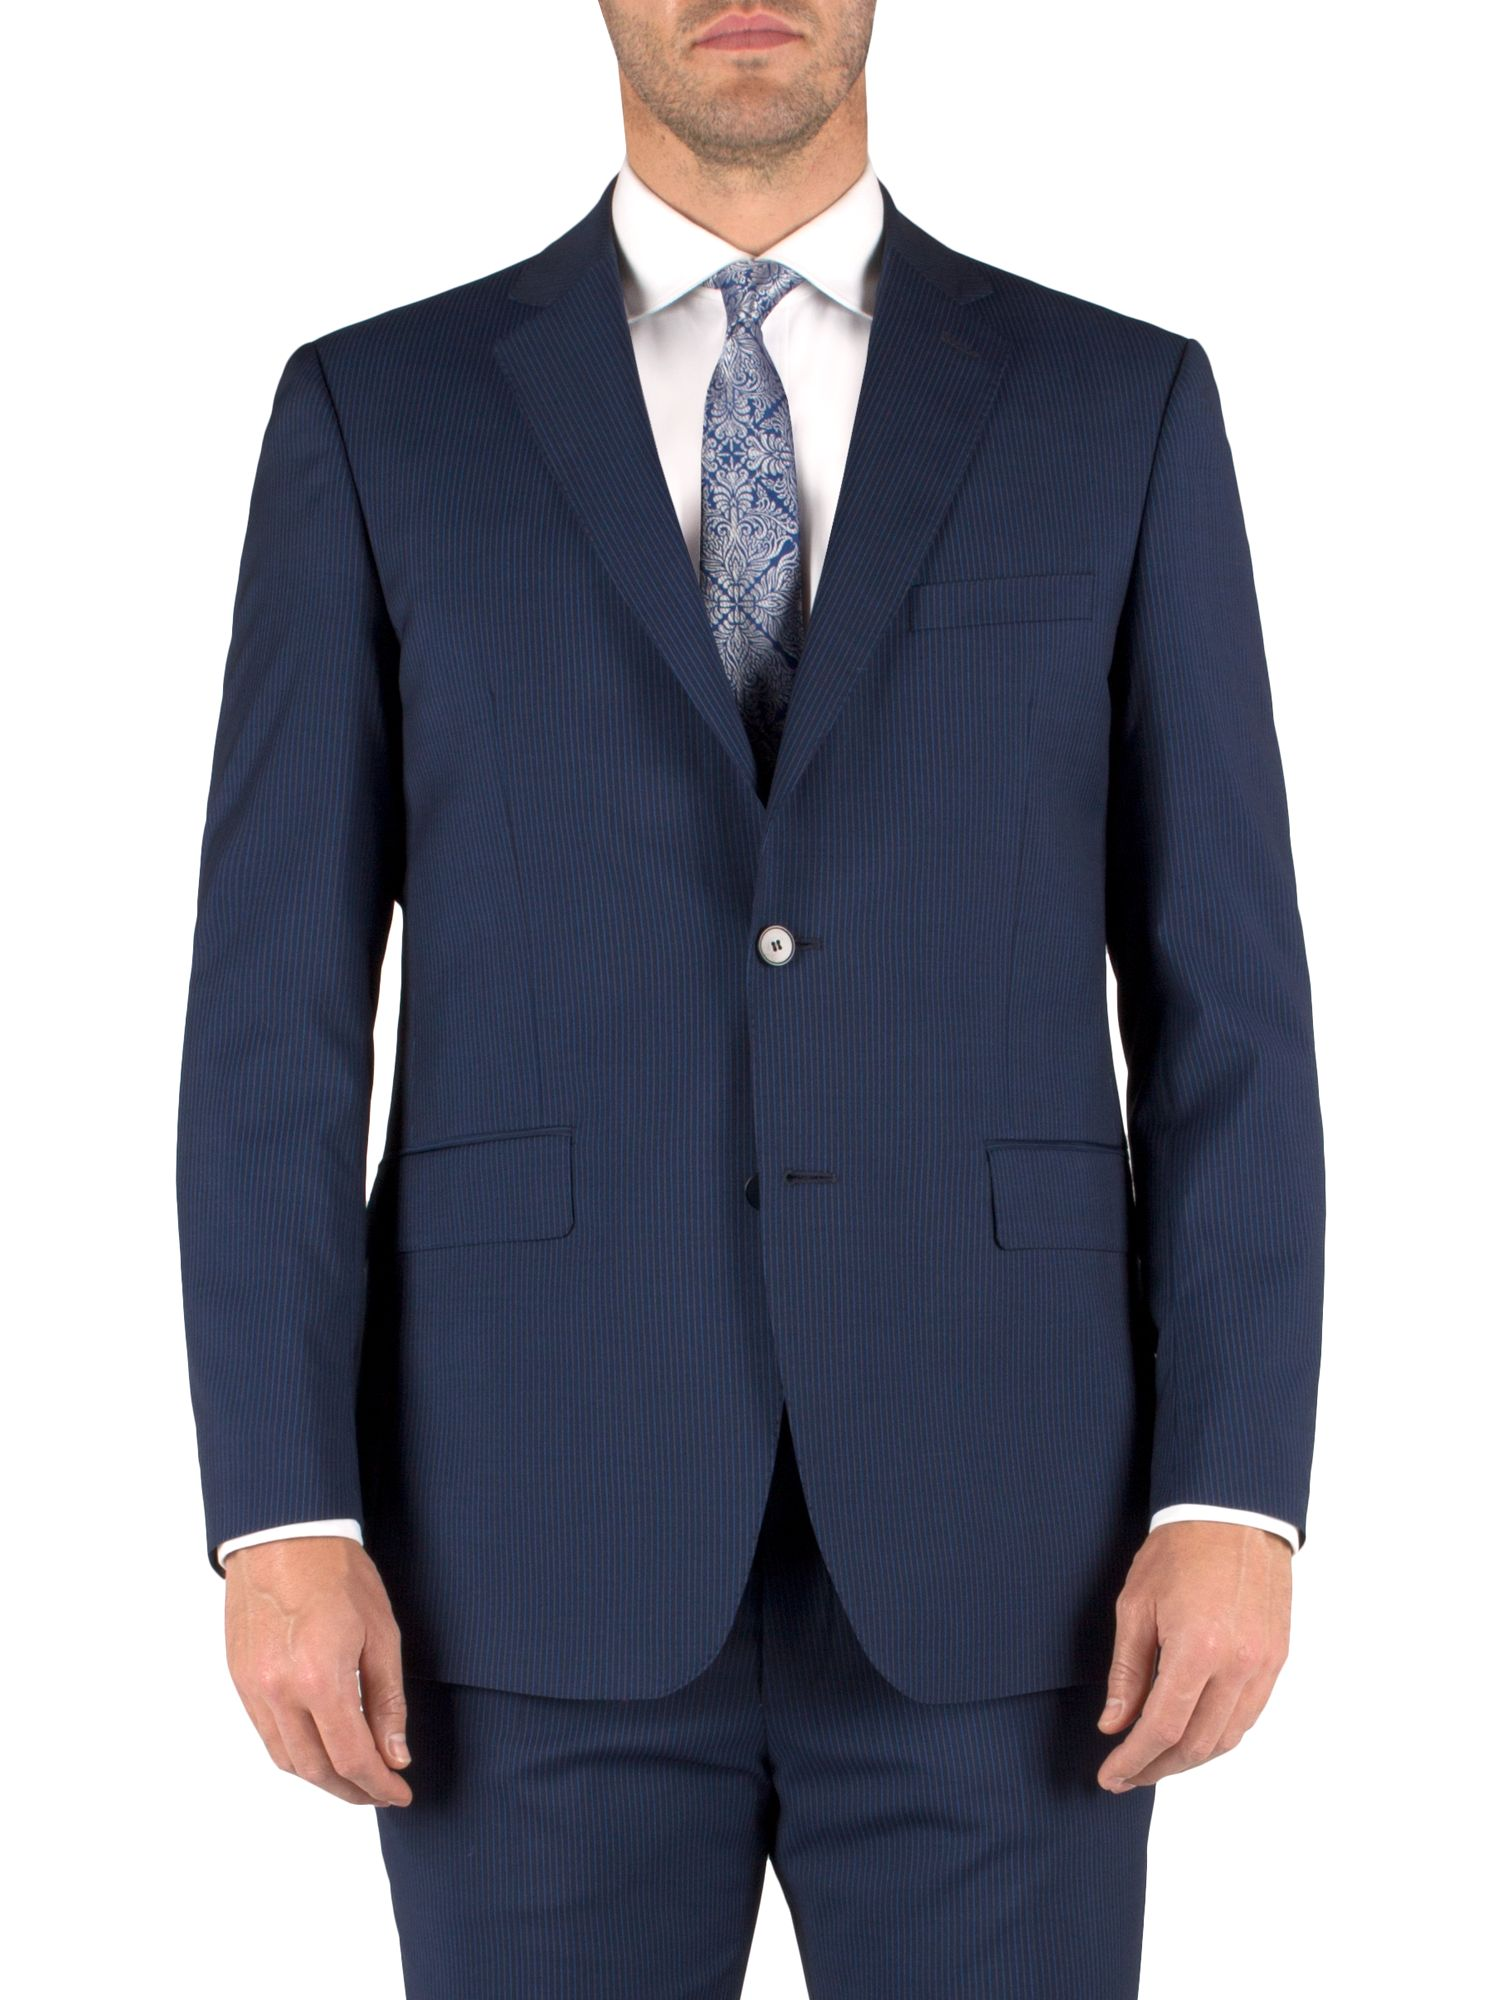 Stripe single breasted classic suit jacket